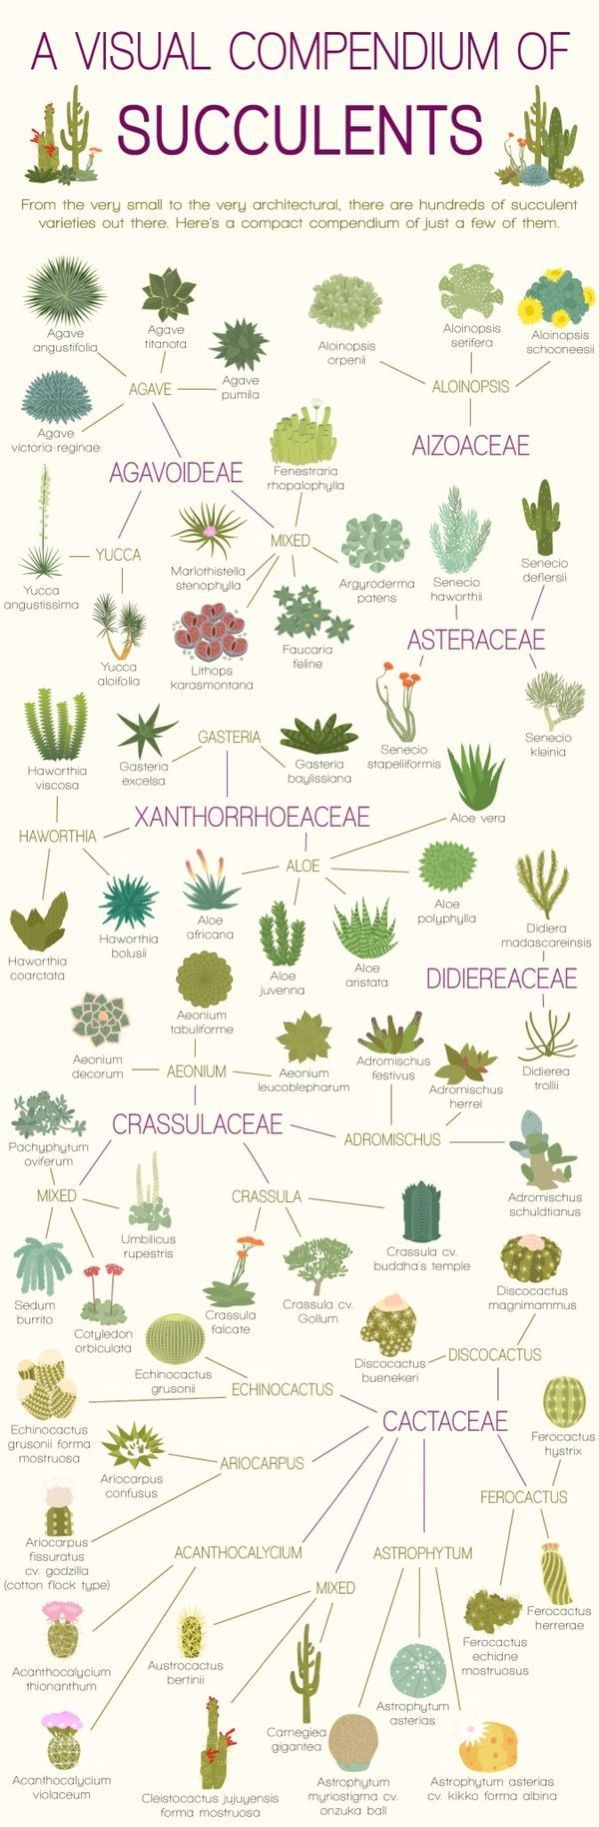 A visual compendium of succulents. If you like the idea of aloe vera but aren't into gardening, check out products via: https://www.facebook.com/groups/gillianajonesforever/